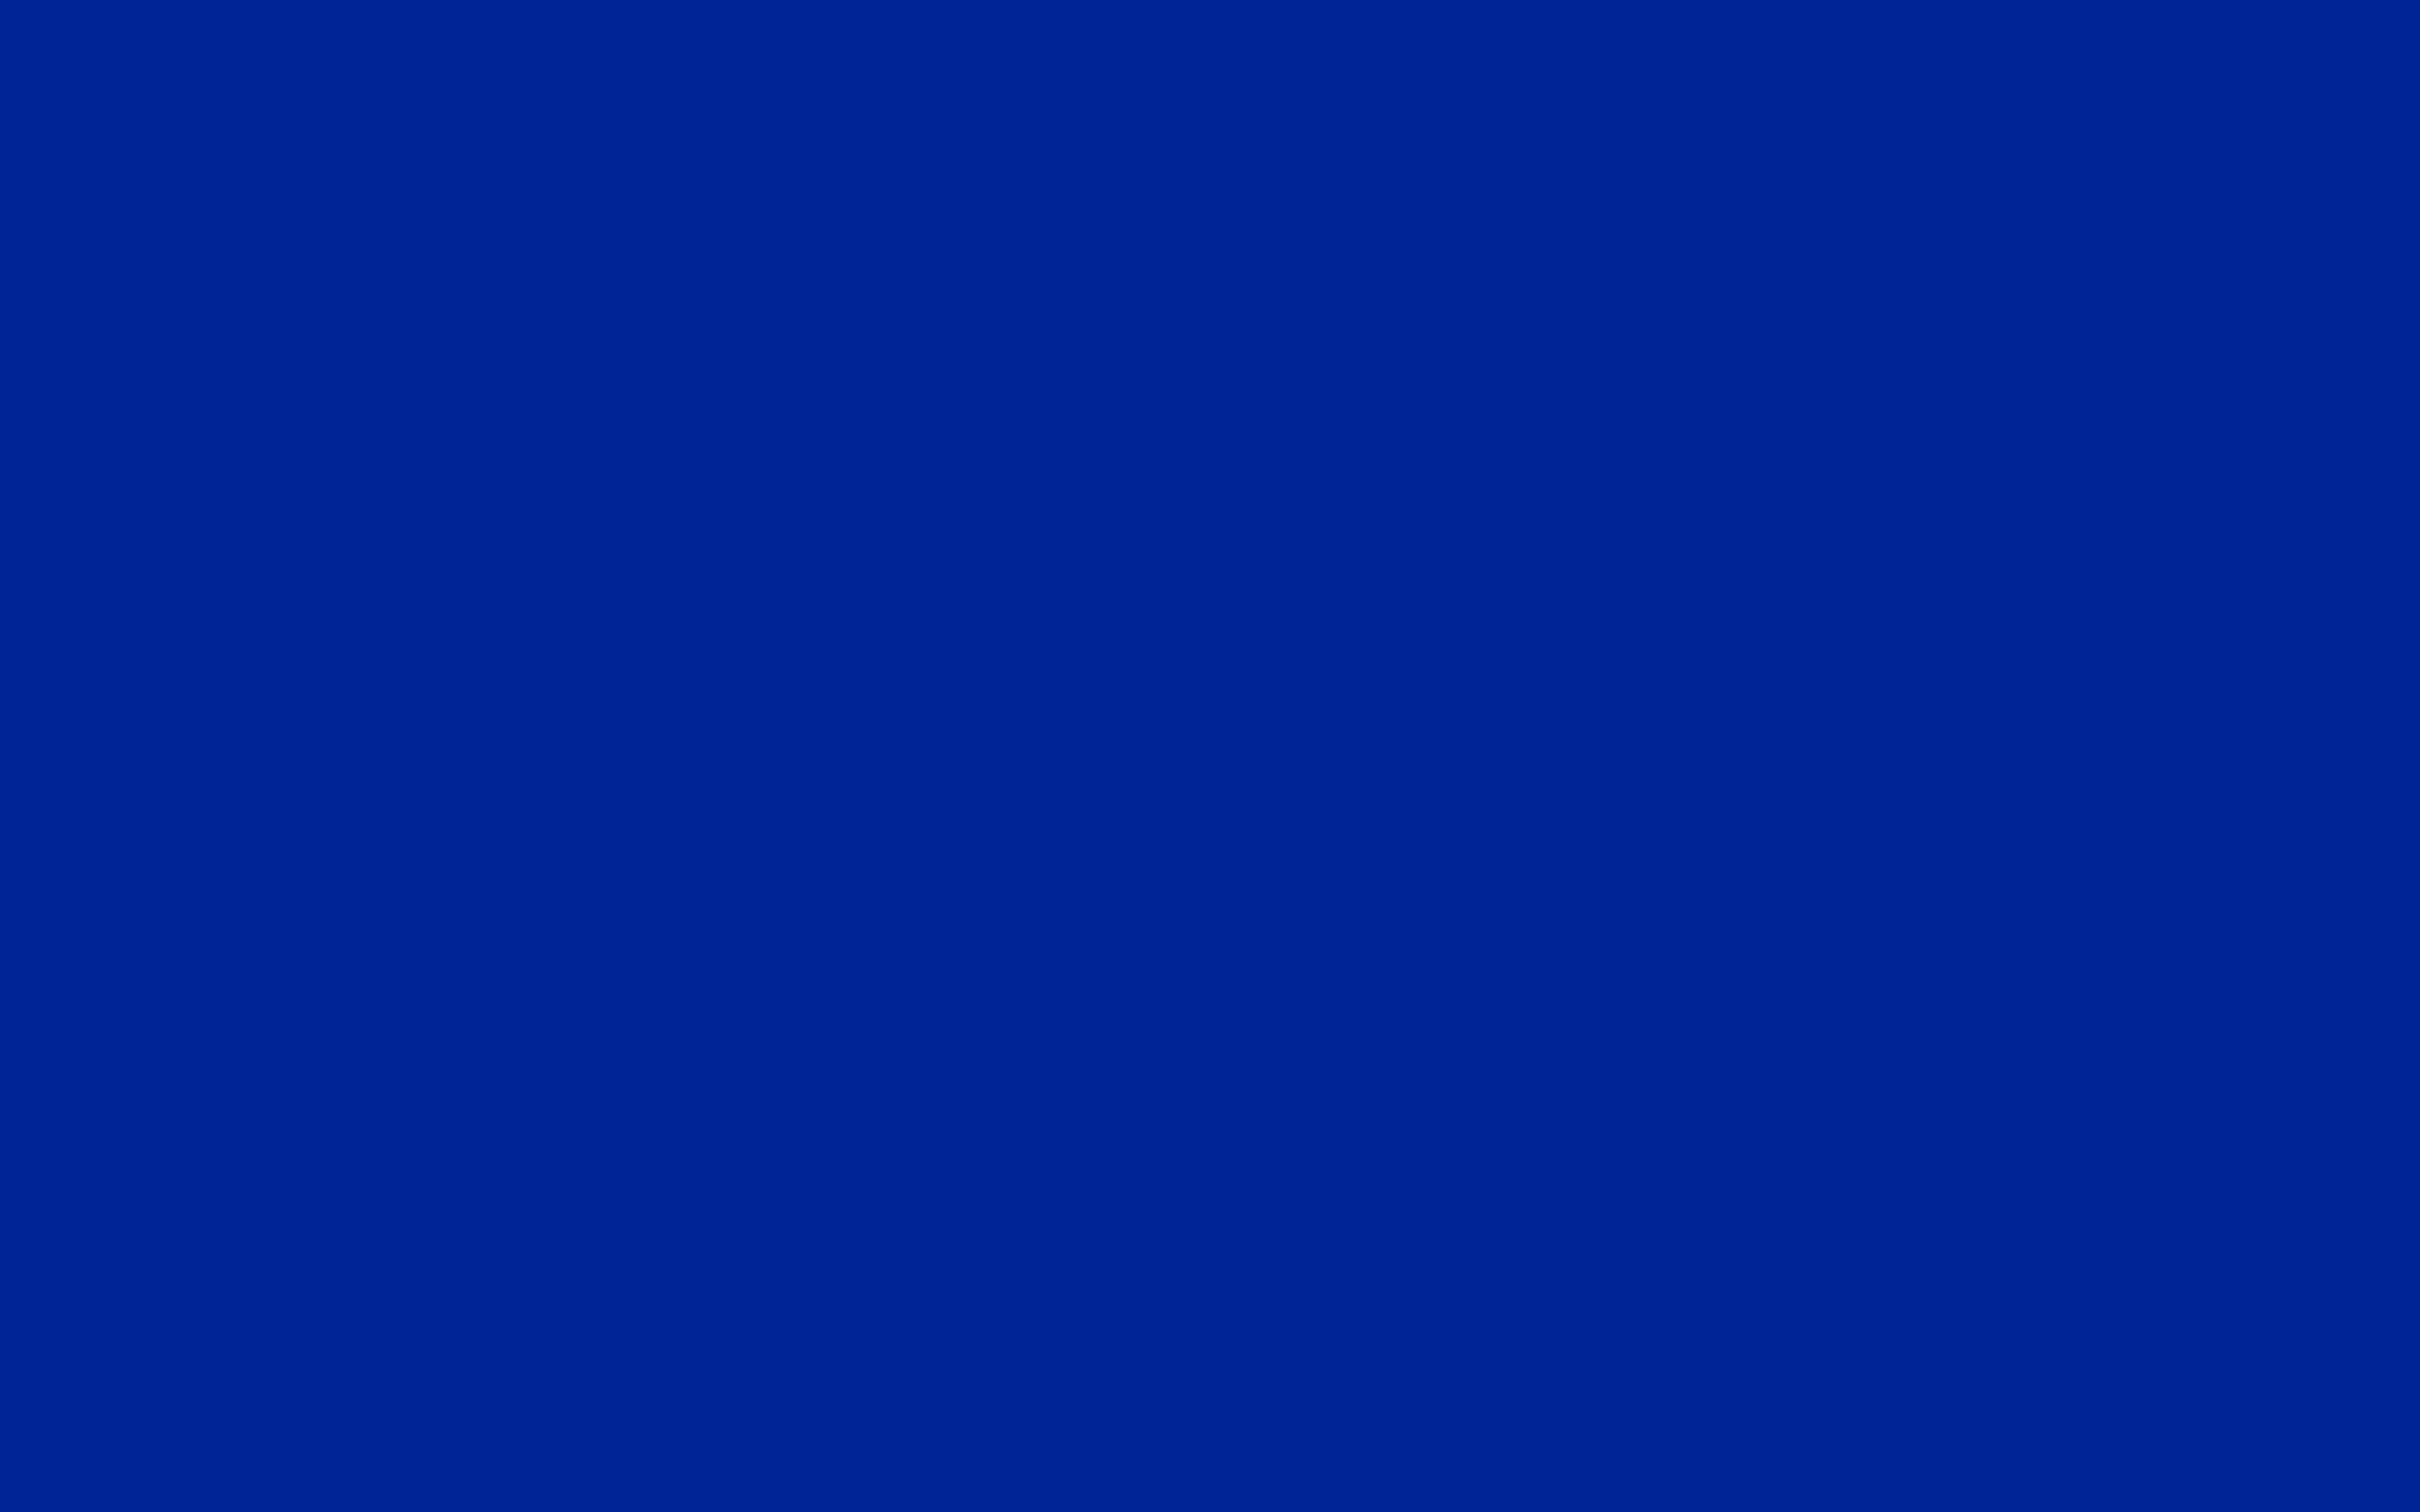 2880x1800 Imperial Blue Solid Color Background